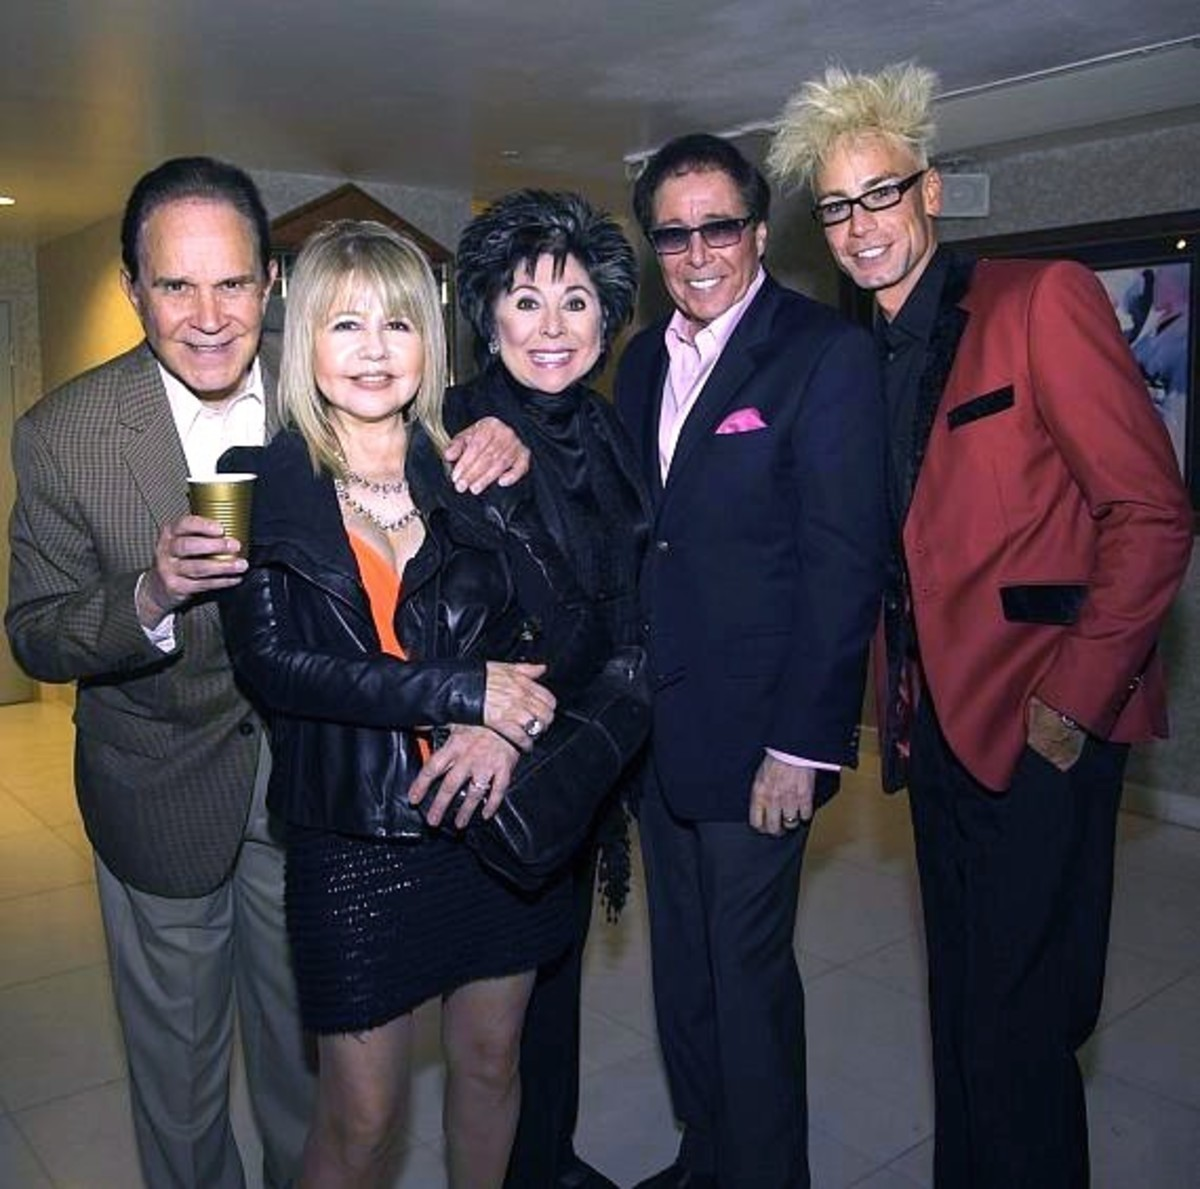 Lorraine & Dennis backstage at the Dennis Bono Show with celebrity guests, Rich Little, Pia Zadora and Murray the Magician.